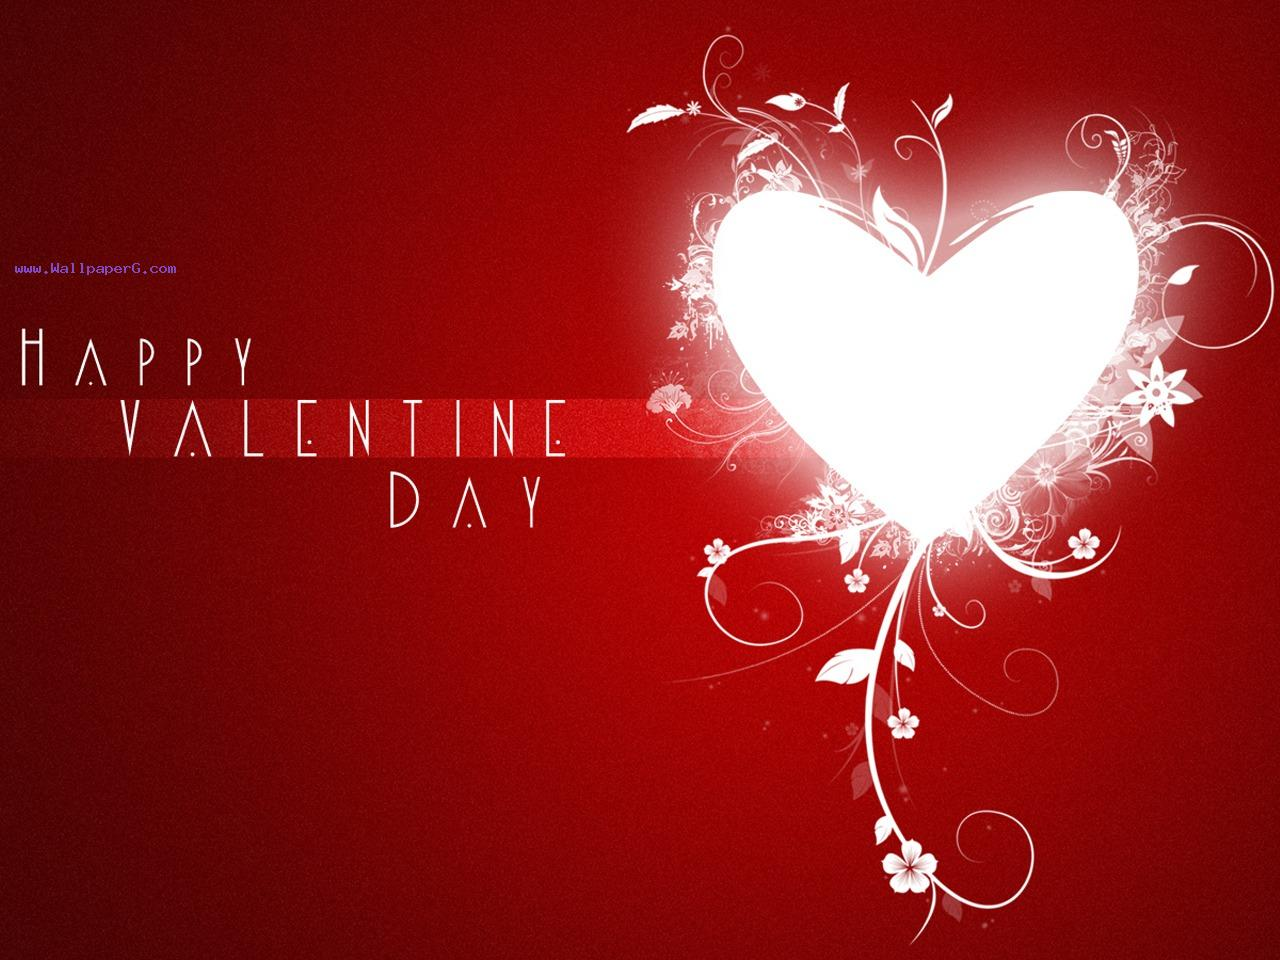 Valentines day 00 ,wide,wallpapers,images,pictute,photos